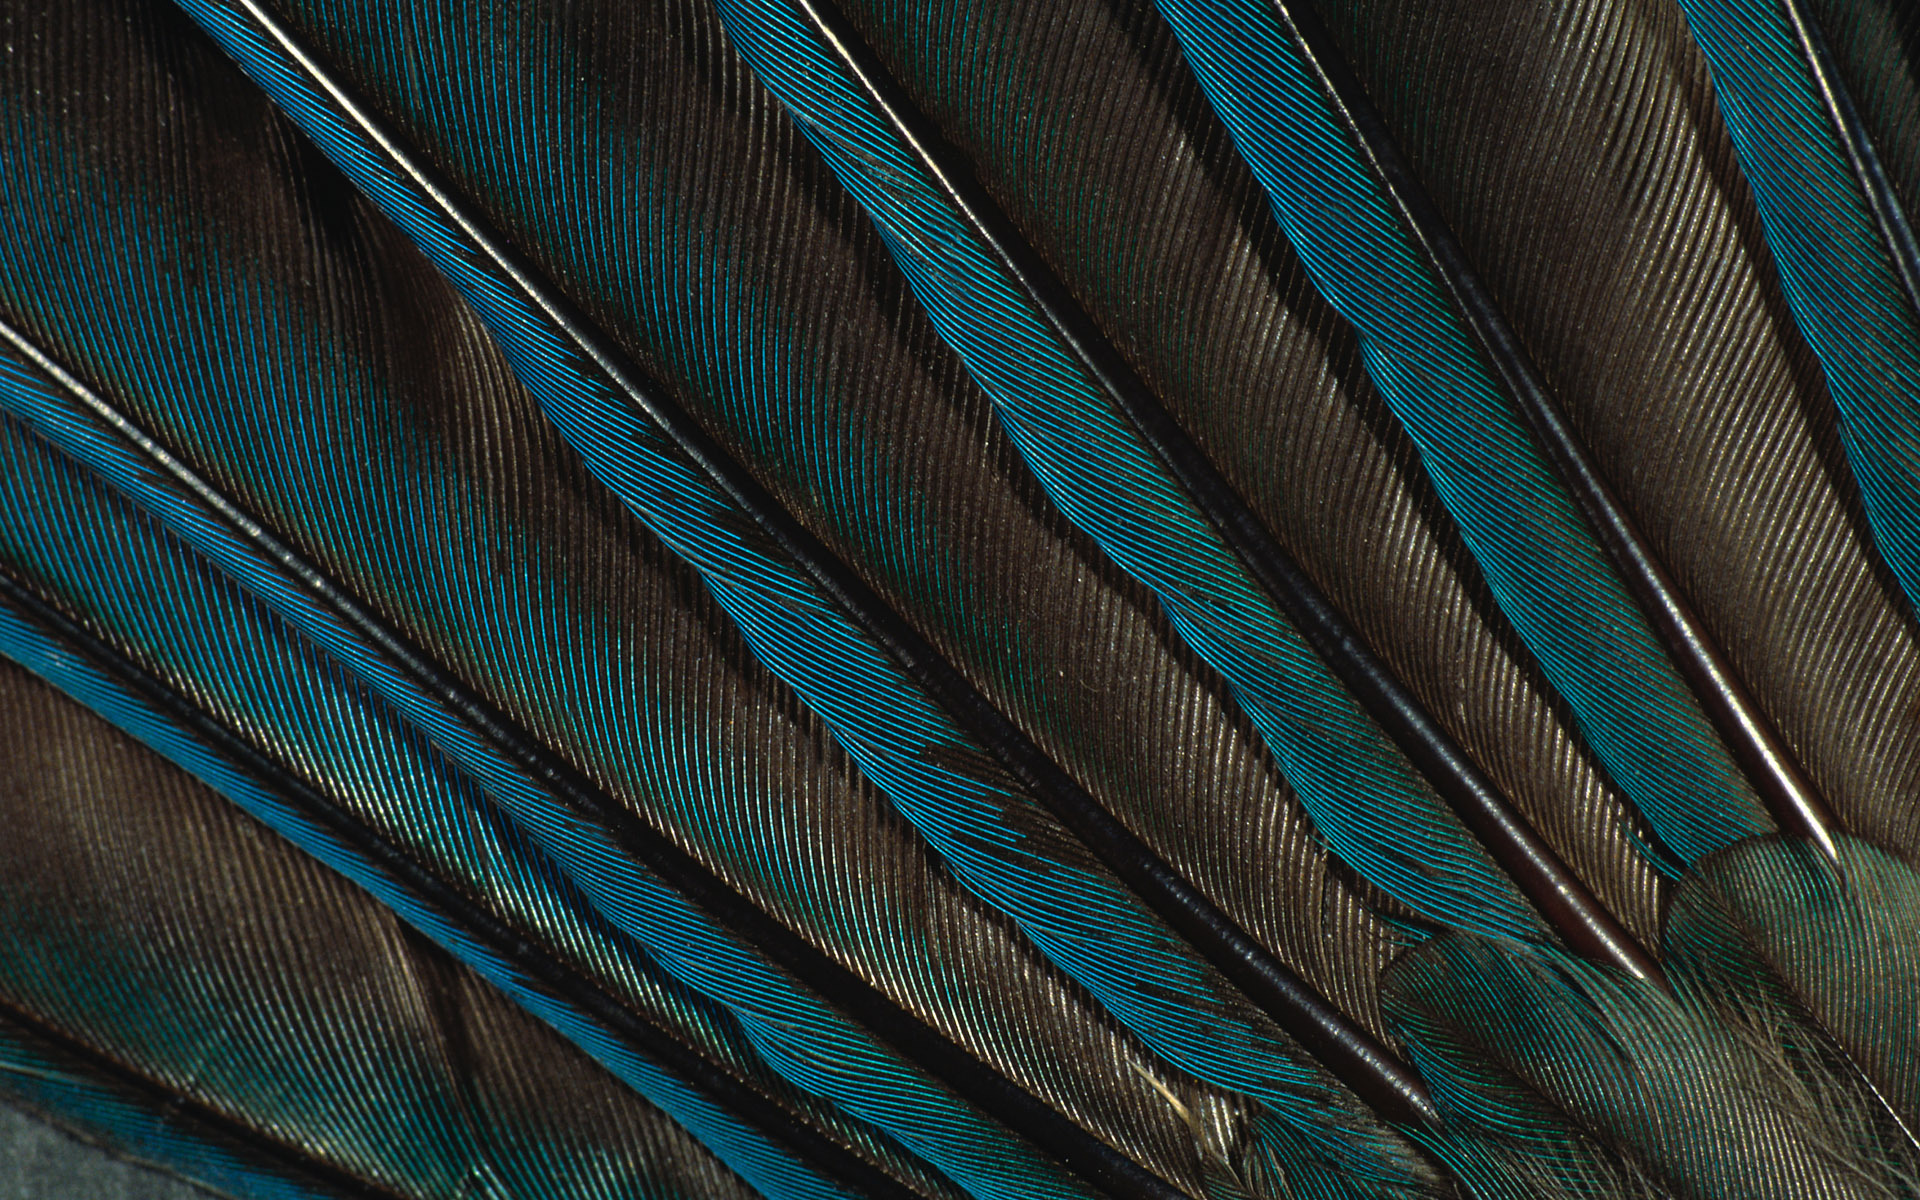 перья, texture feather, download background, photo, image, feather background texture